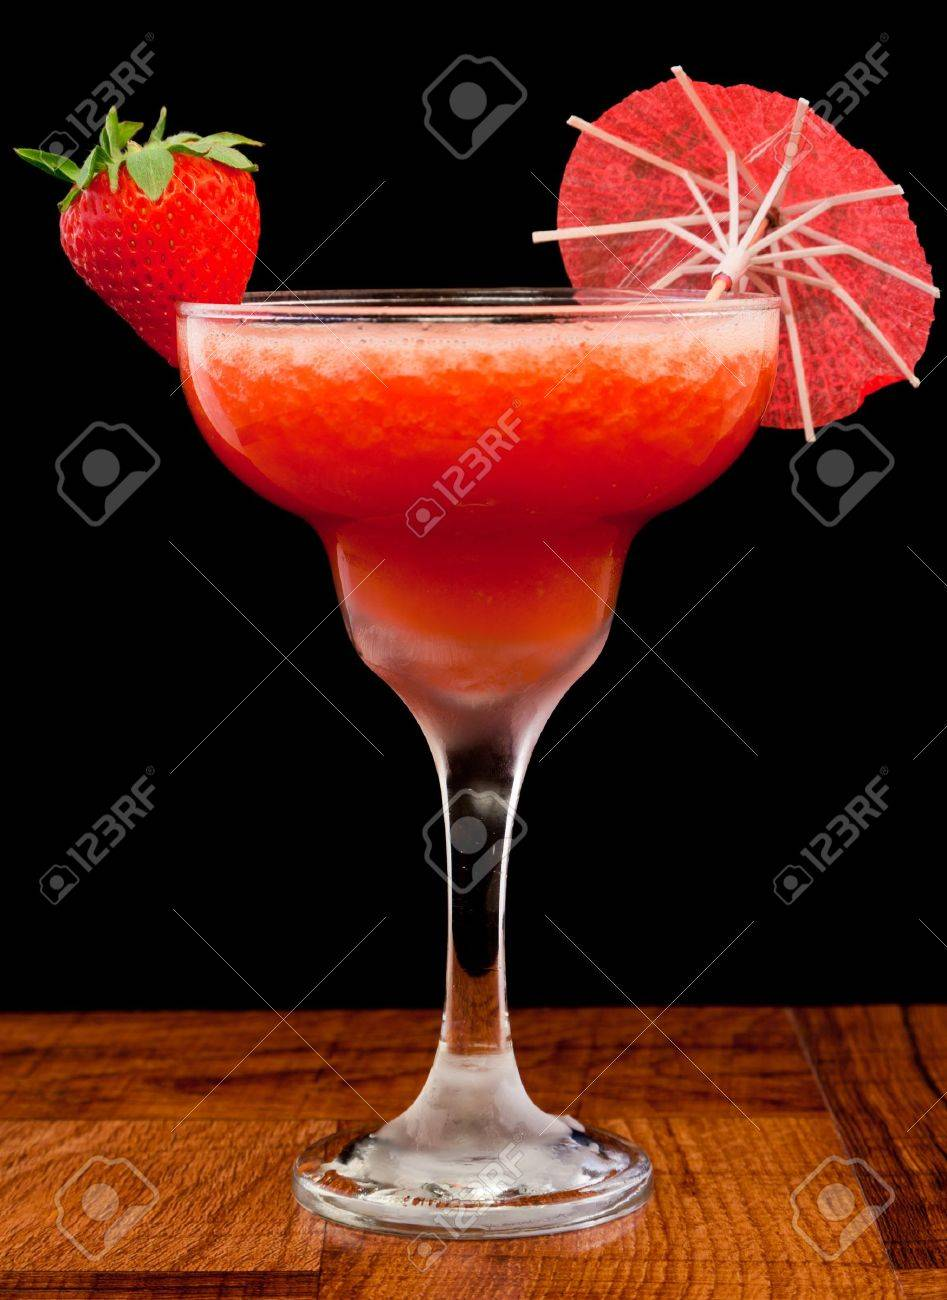 fresh pureed strawberry margarita isolated on a black background Stock Photo - 13030755